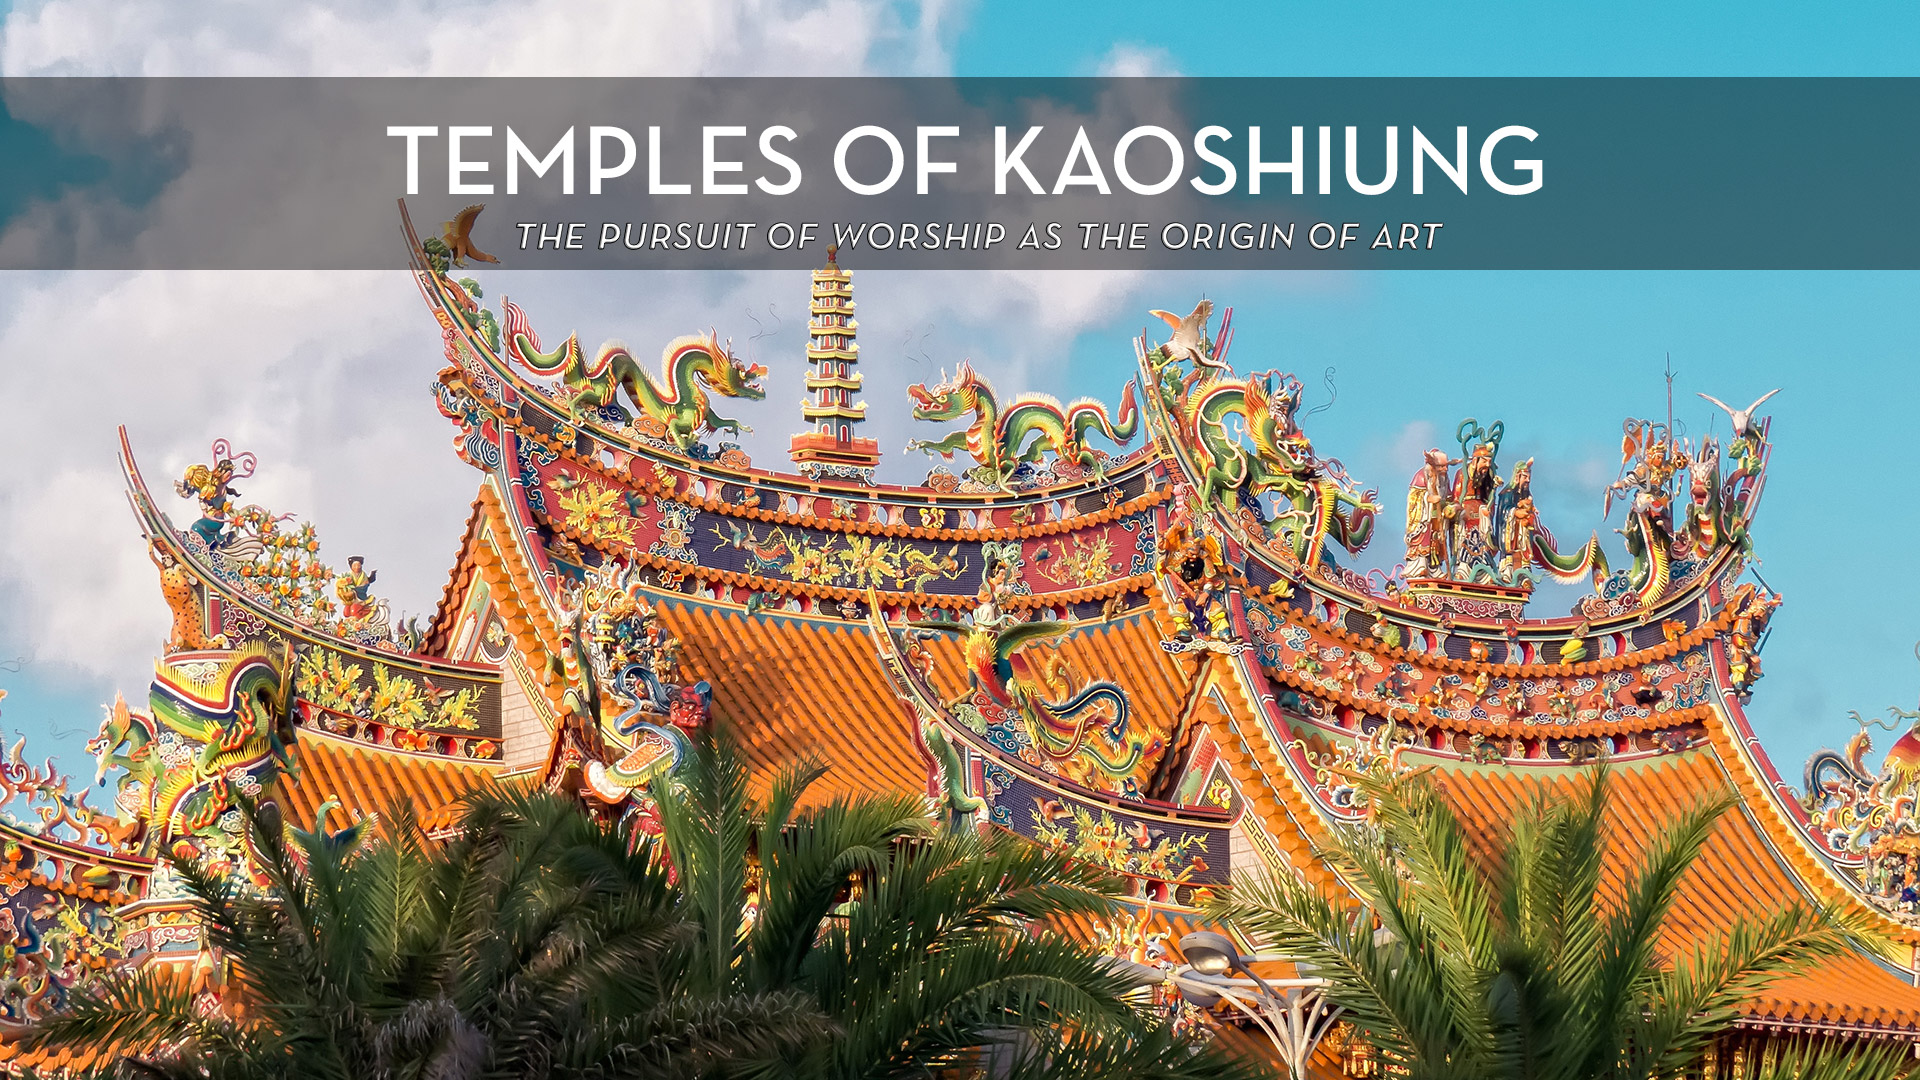 The temples of Kaoshiung